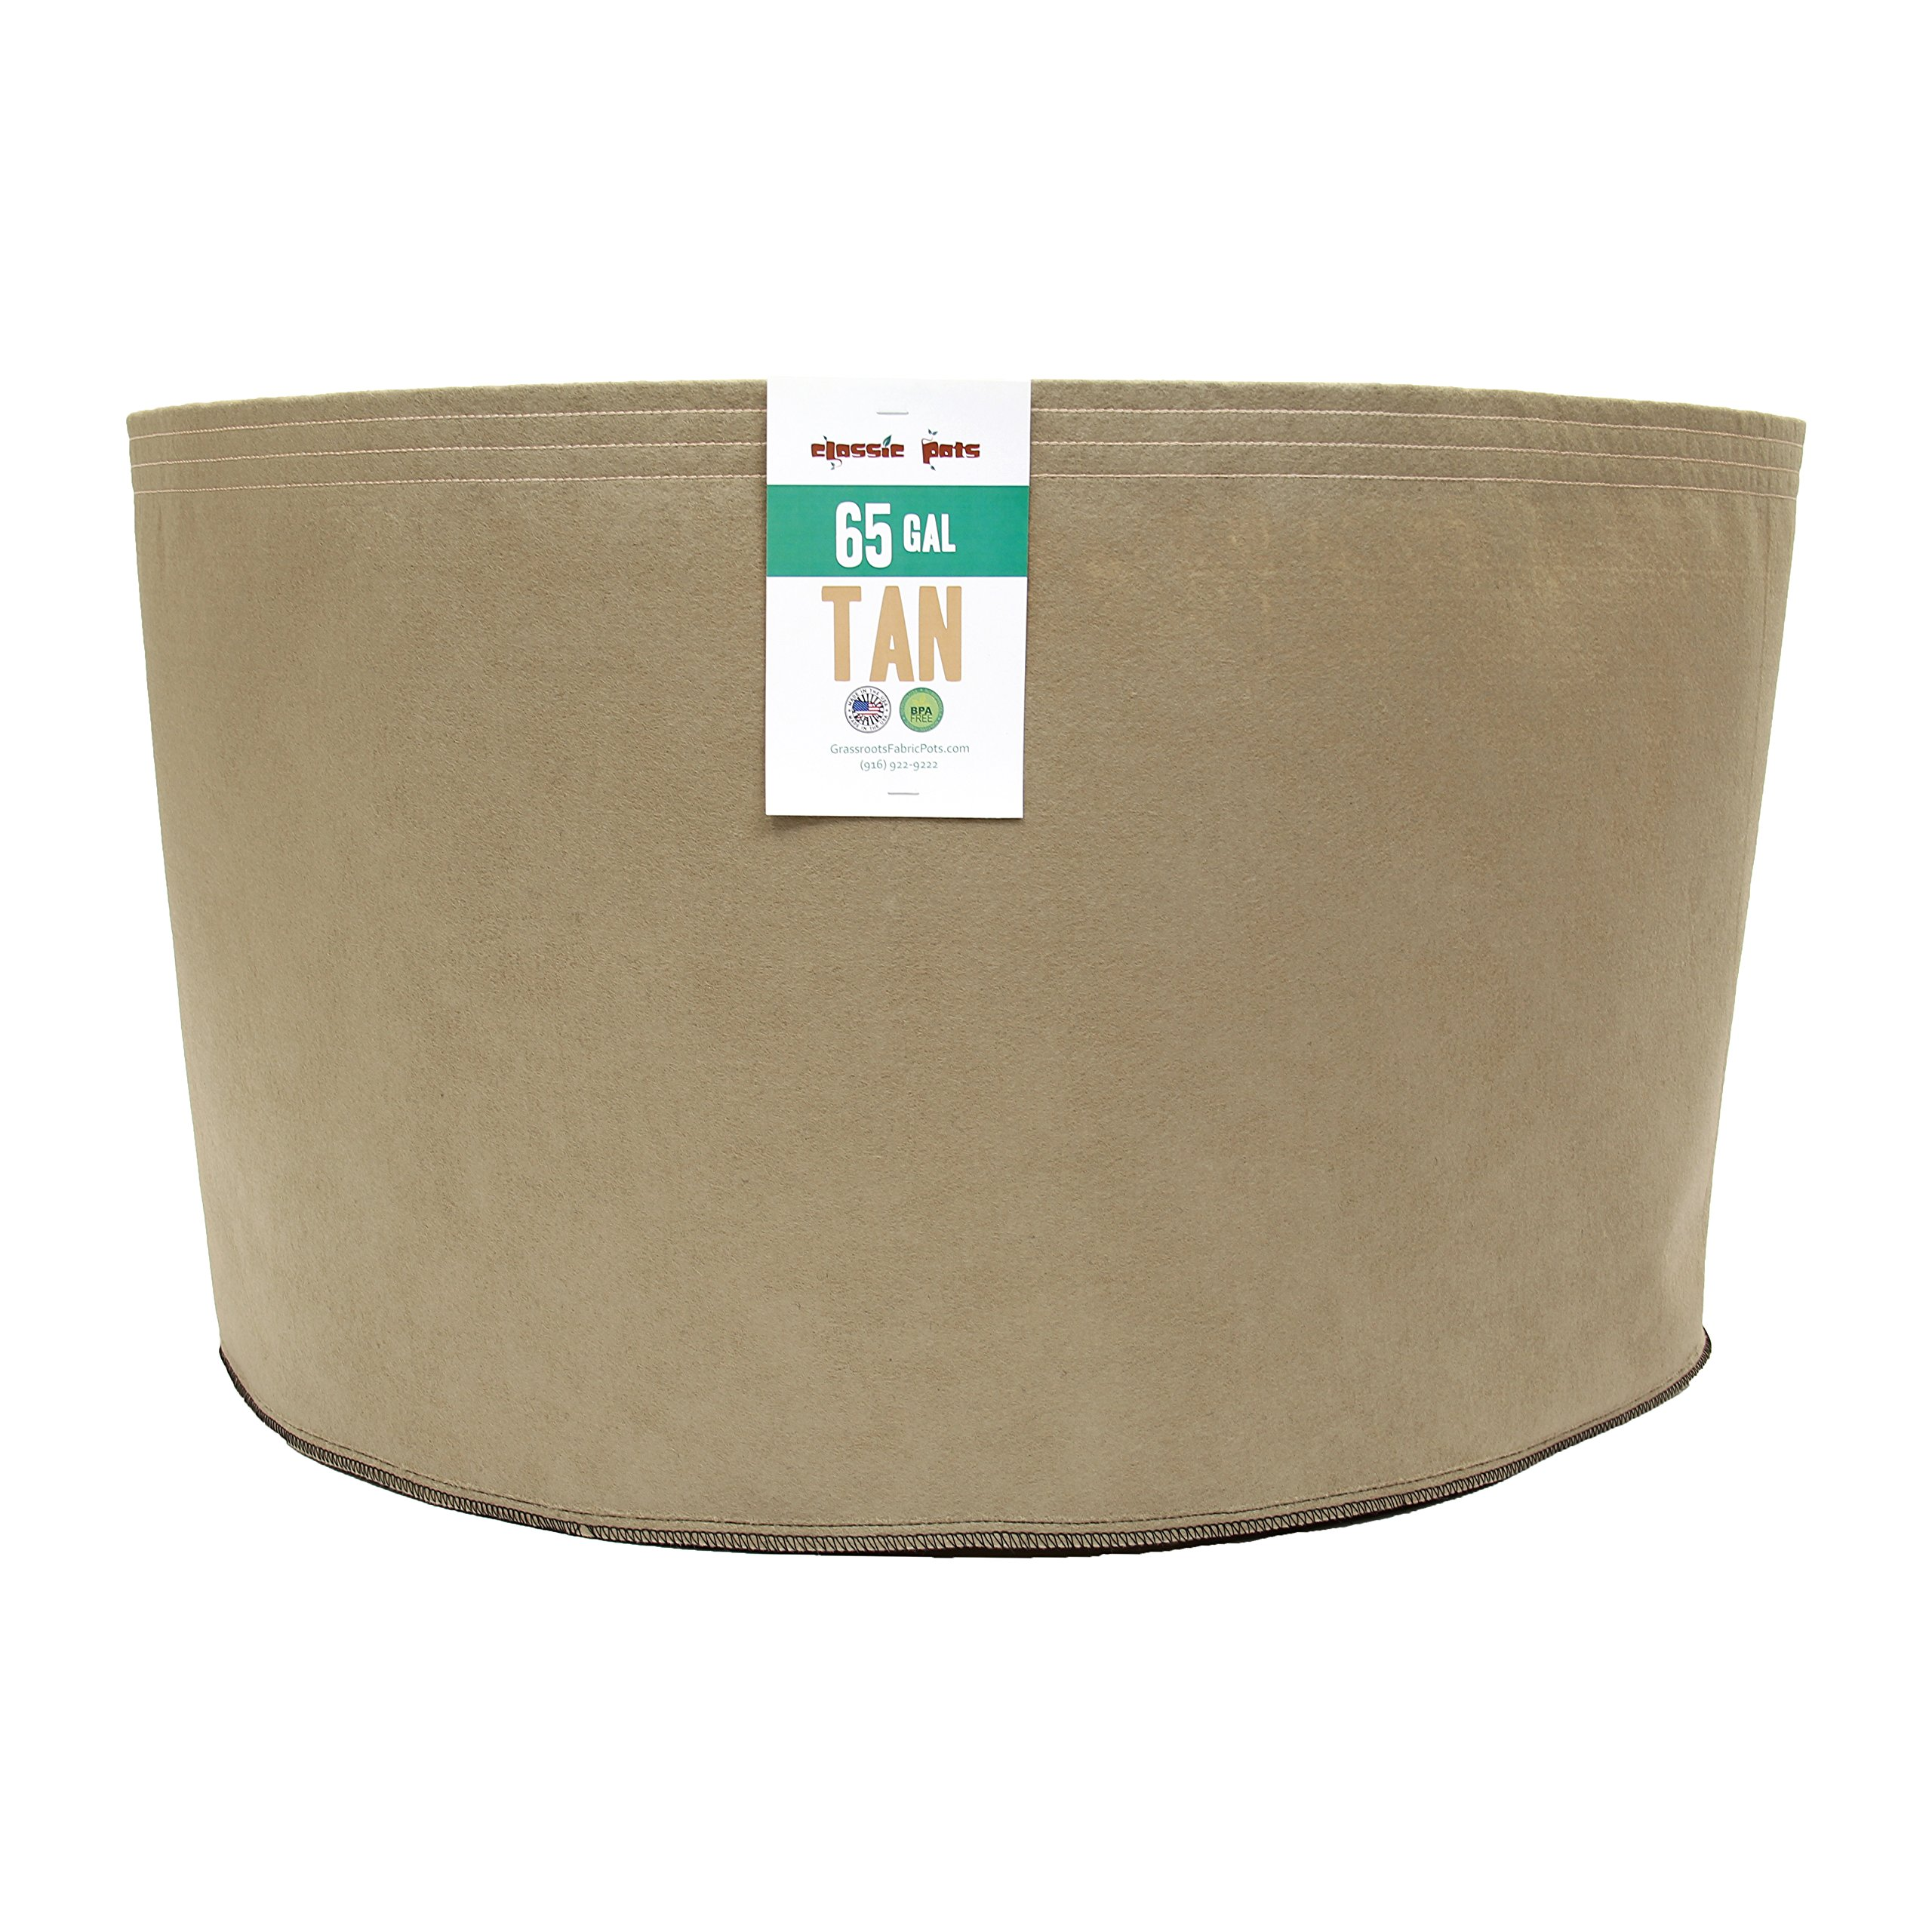 (10 Pack) 65 Gallon Tan Grassroots Fabric Pot - Grow Pot and Aeration Container by Grassroots Fabric Pots